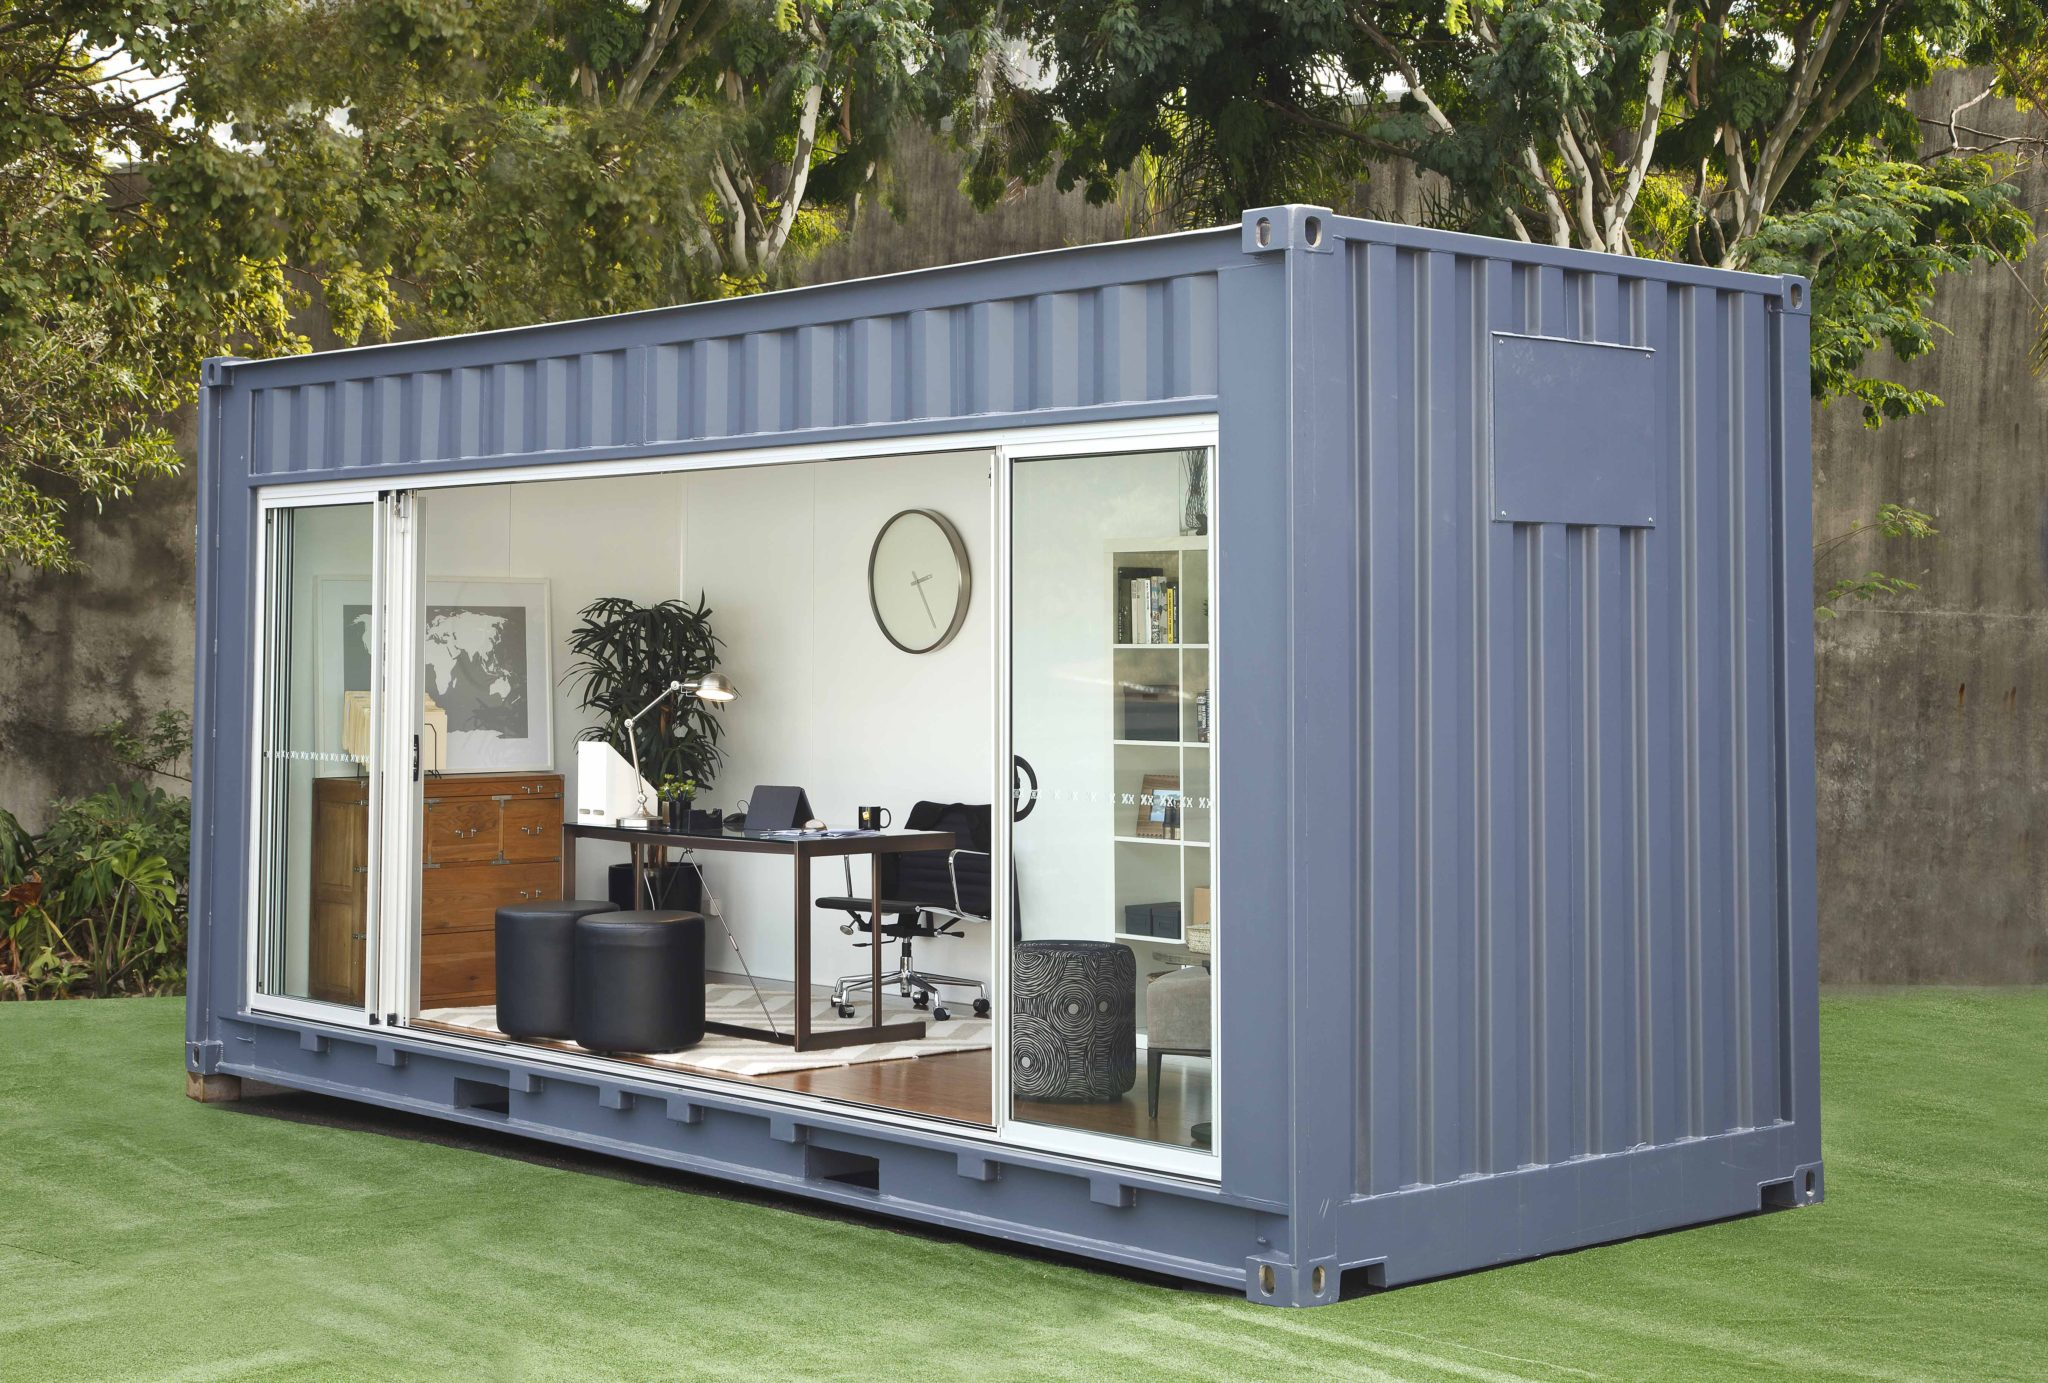 Storage Rental Perth Need Extra Room Rent A Backyard Shipping Container The